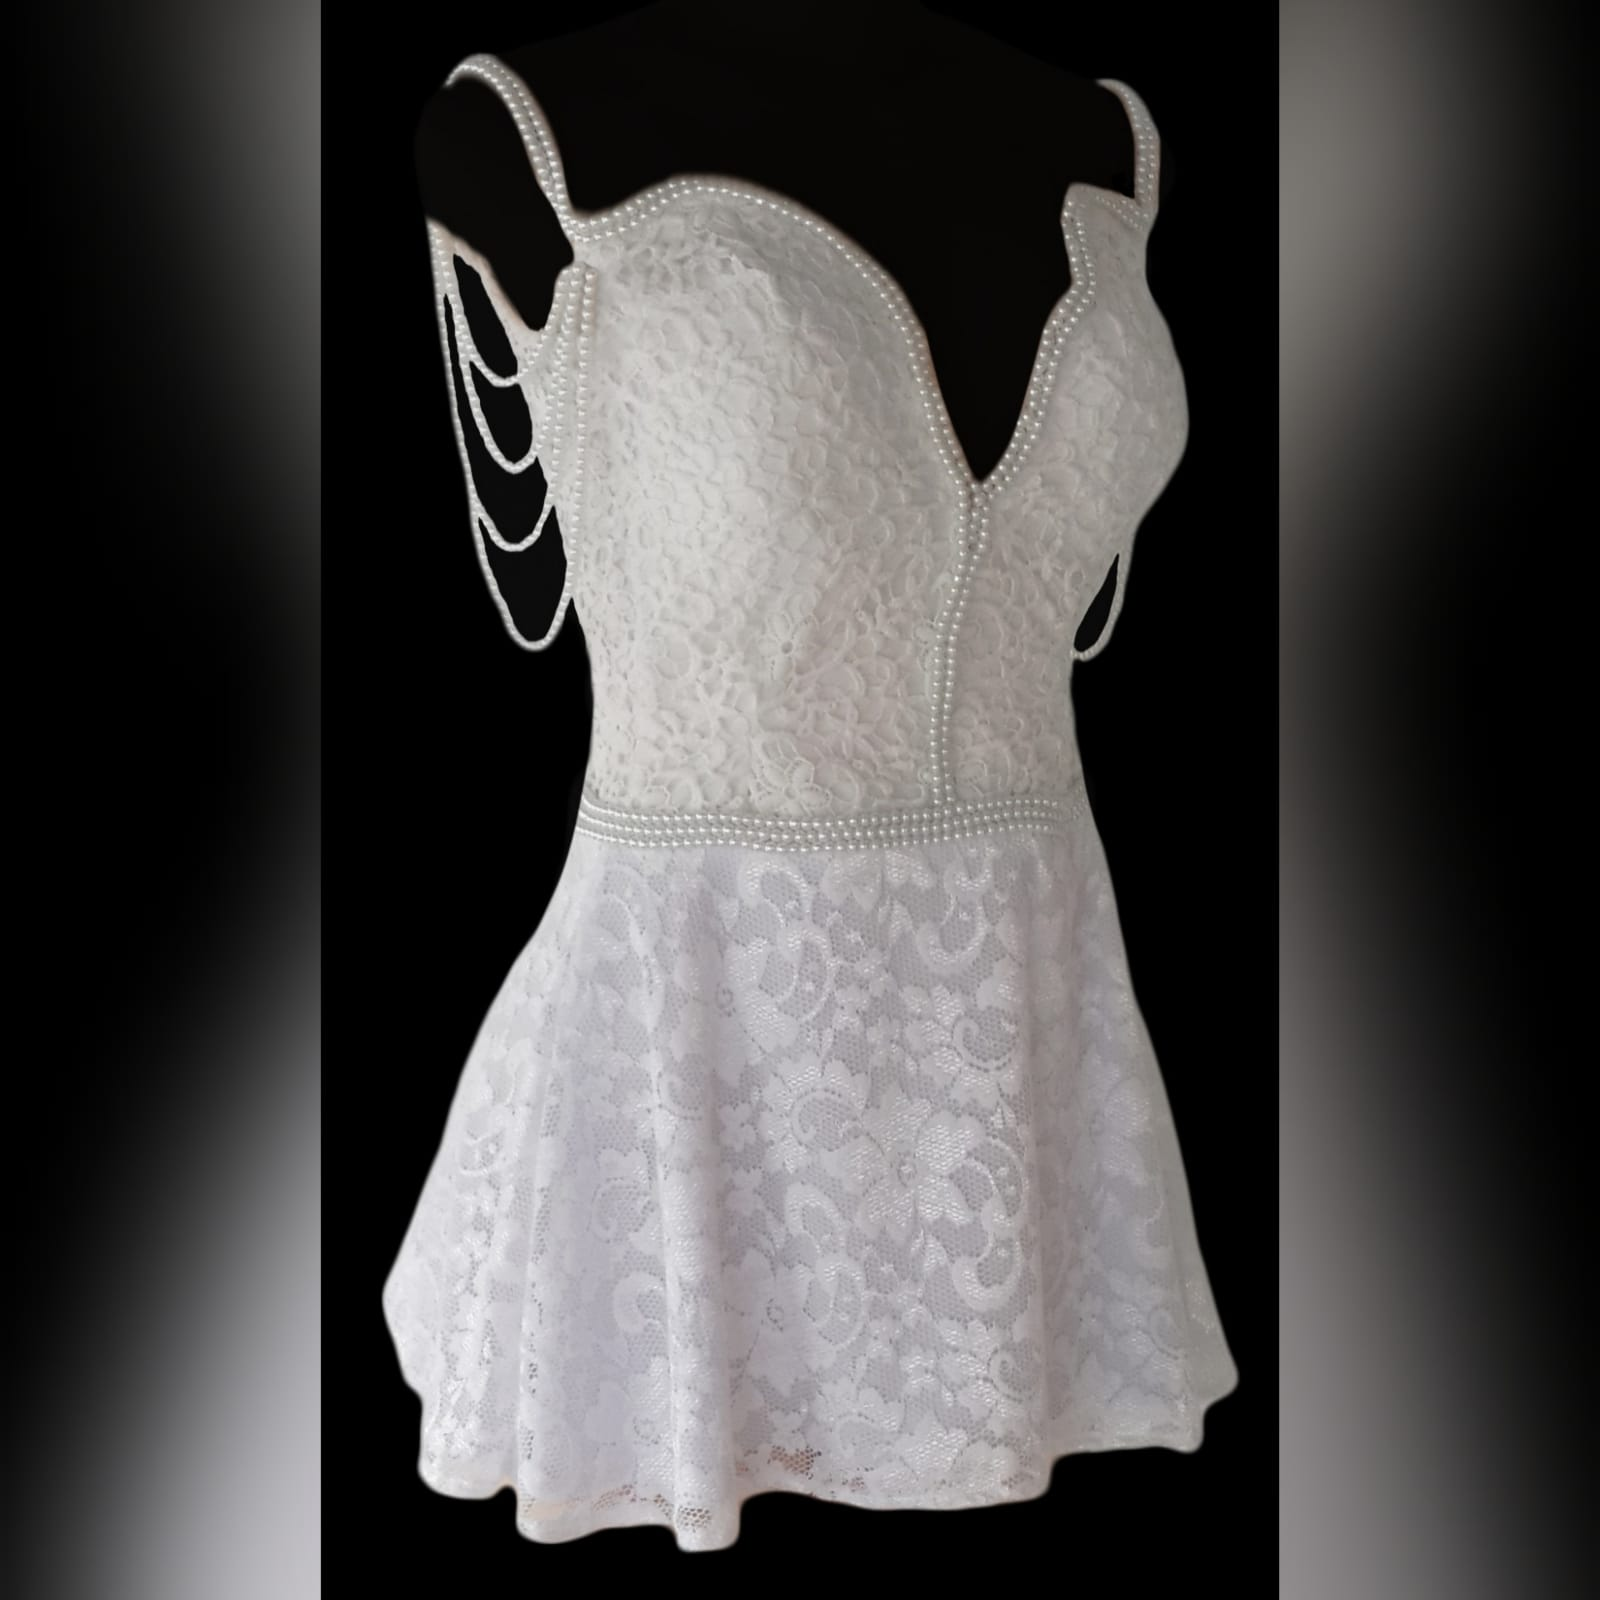 21st birthday party short evening dress 1 white short lace evening dress for a 21st birthday party. With a low v open back. Dress detailed with pearls